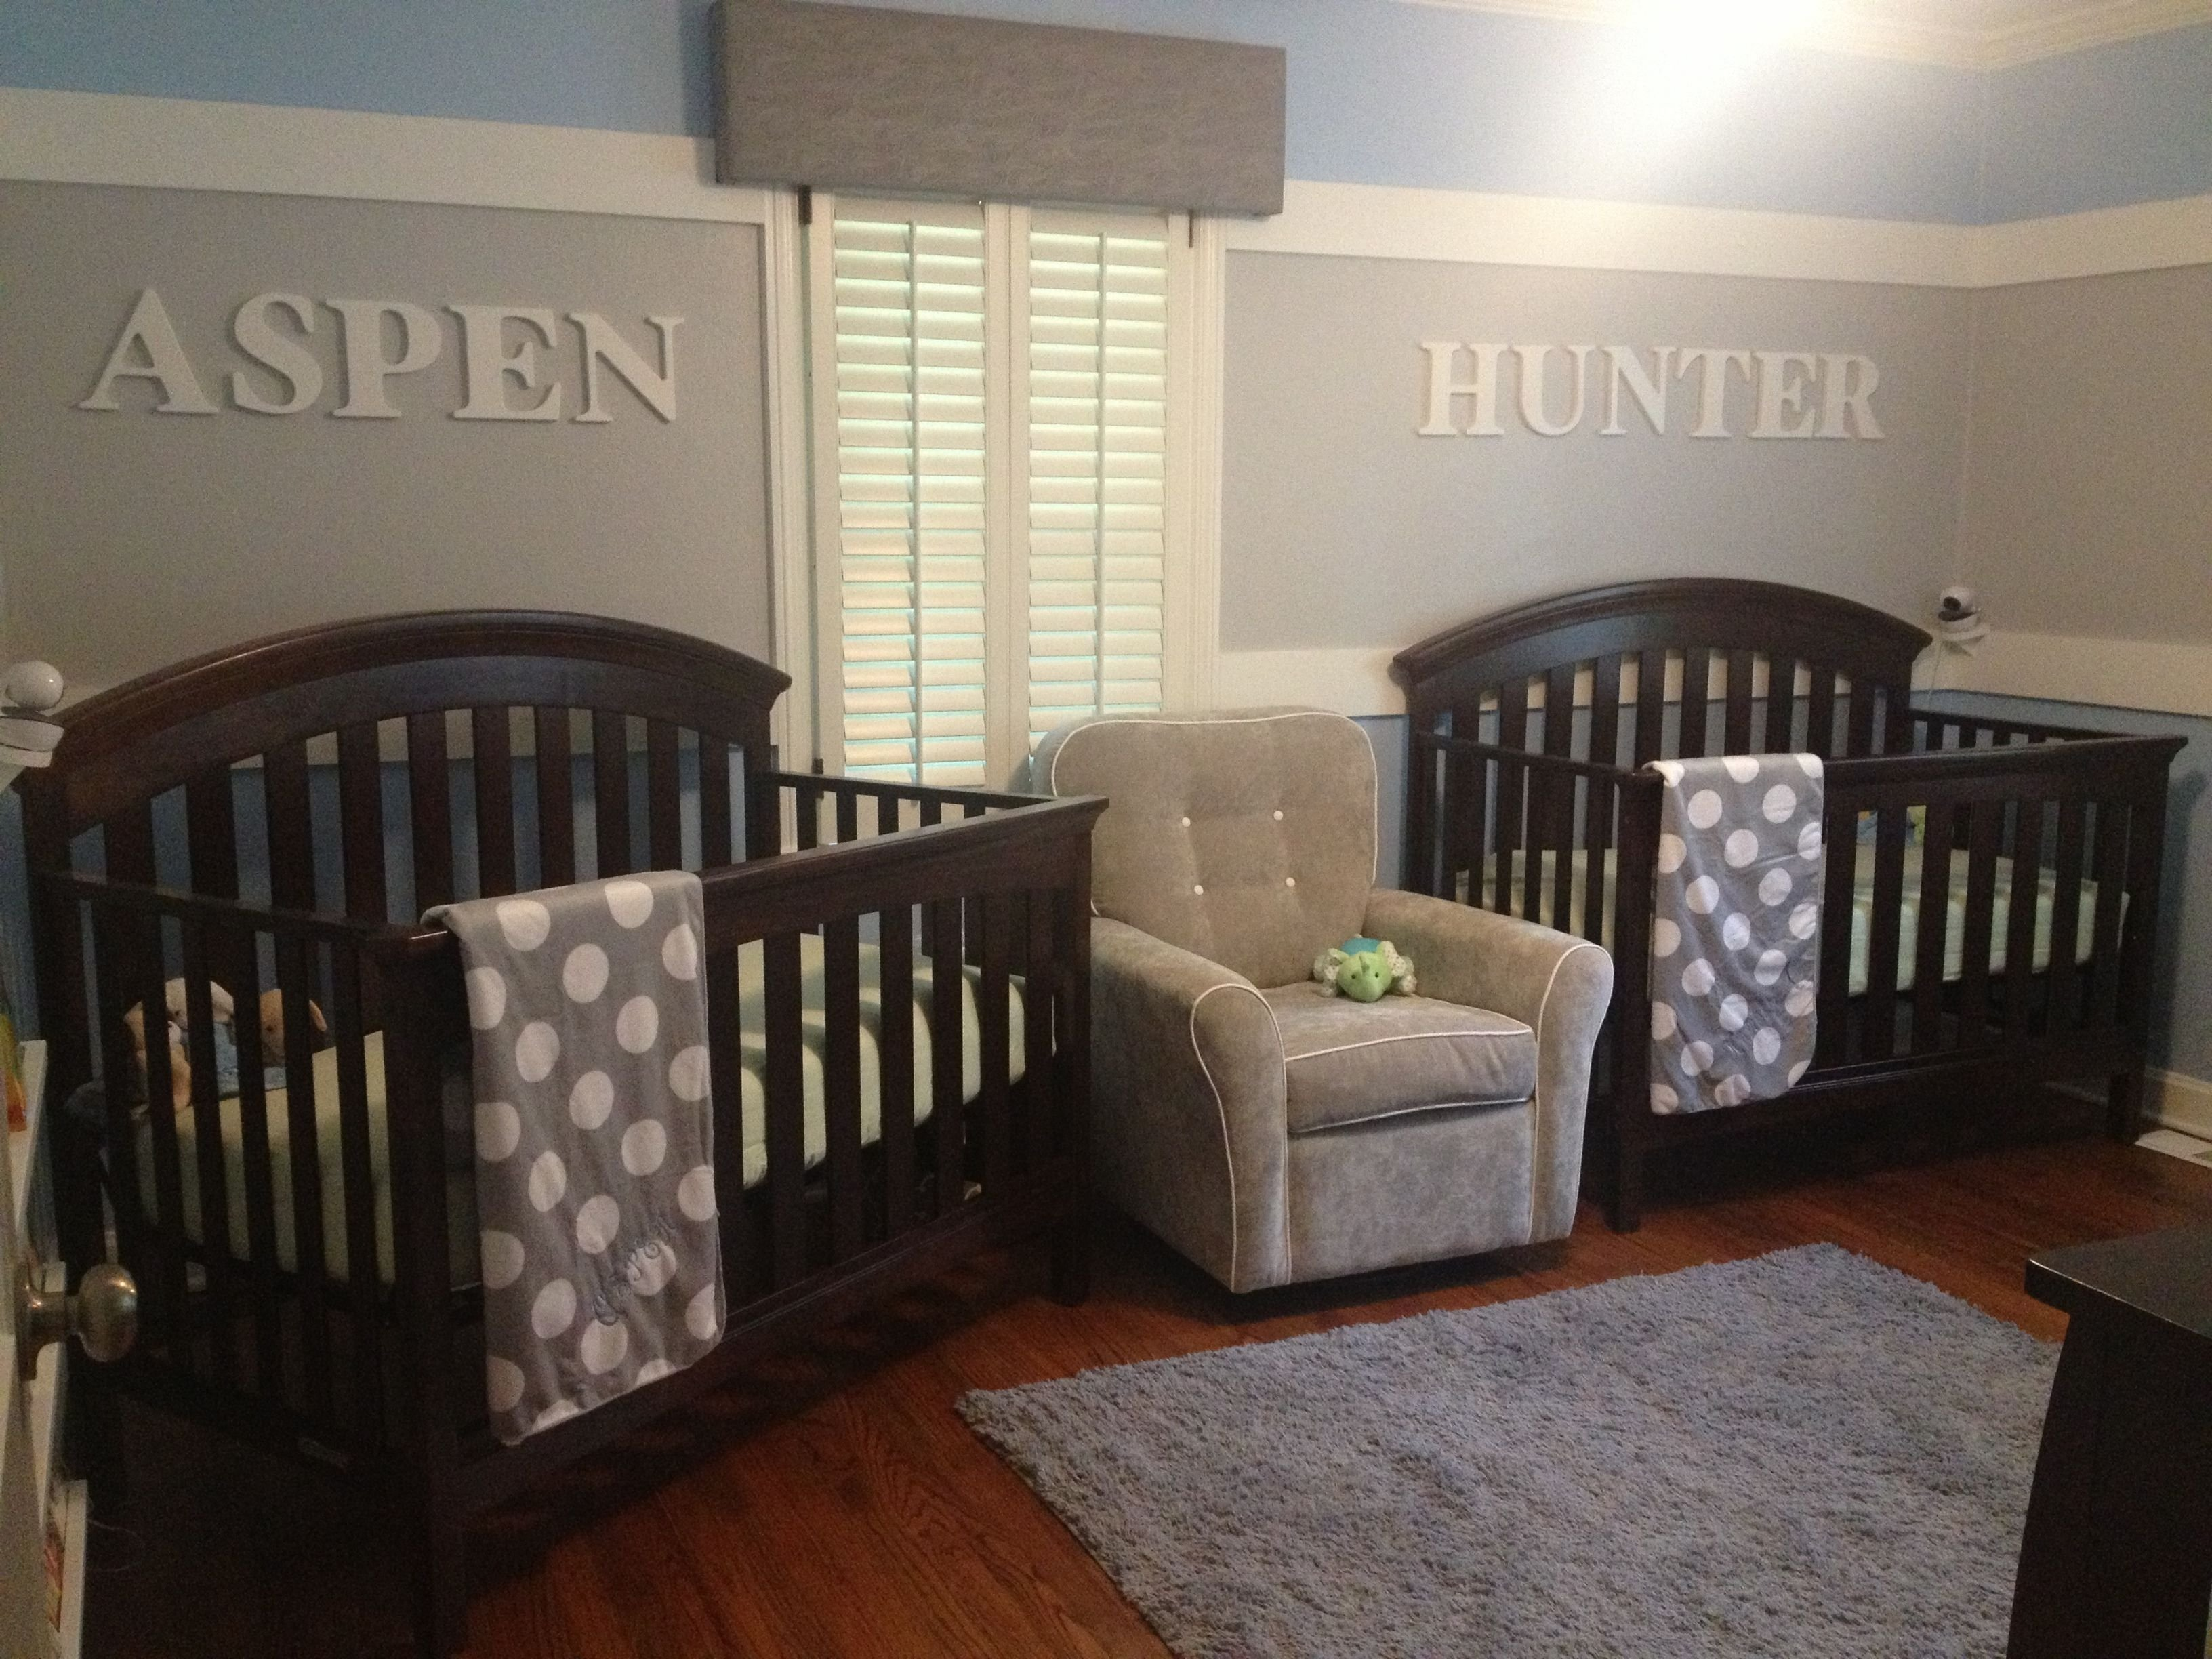 10 Great Baby Boy Room Ideas Pinterest